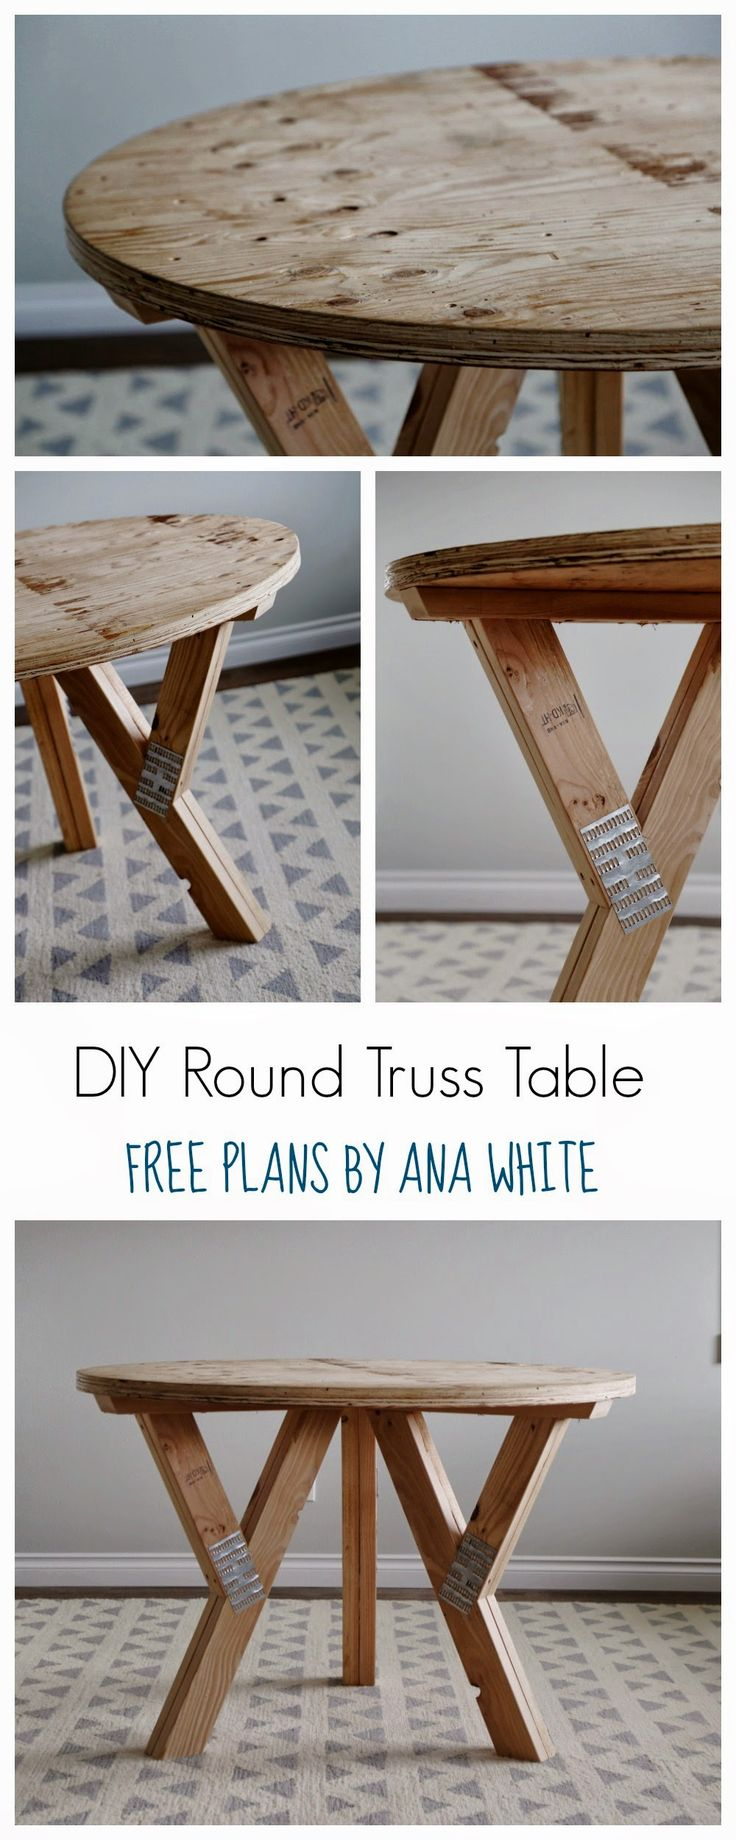 white round tables white distressed kitchen table Ana White Build a Y Truss Round Table Free and Easy DIY Project and